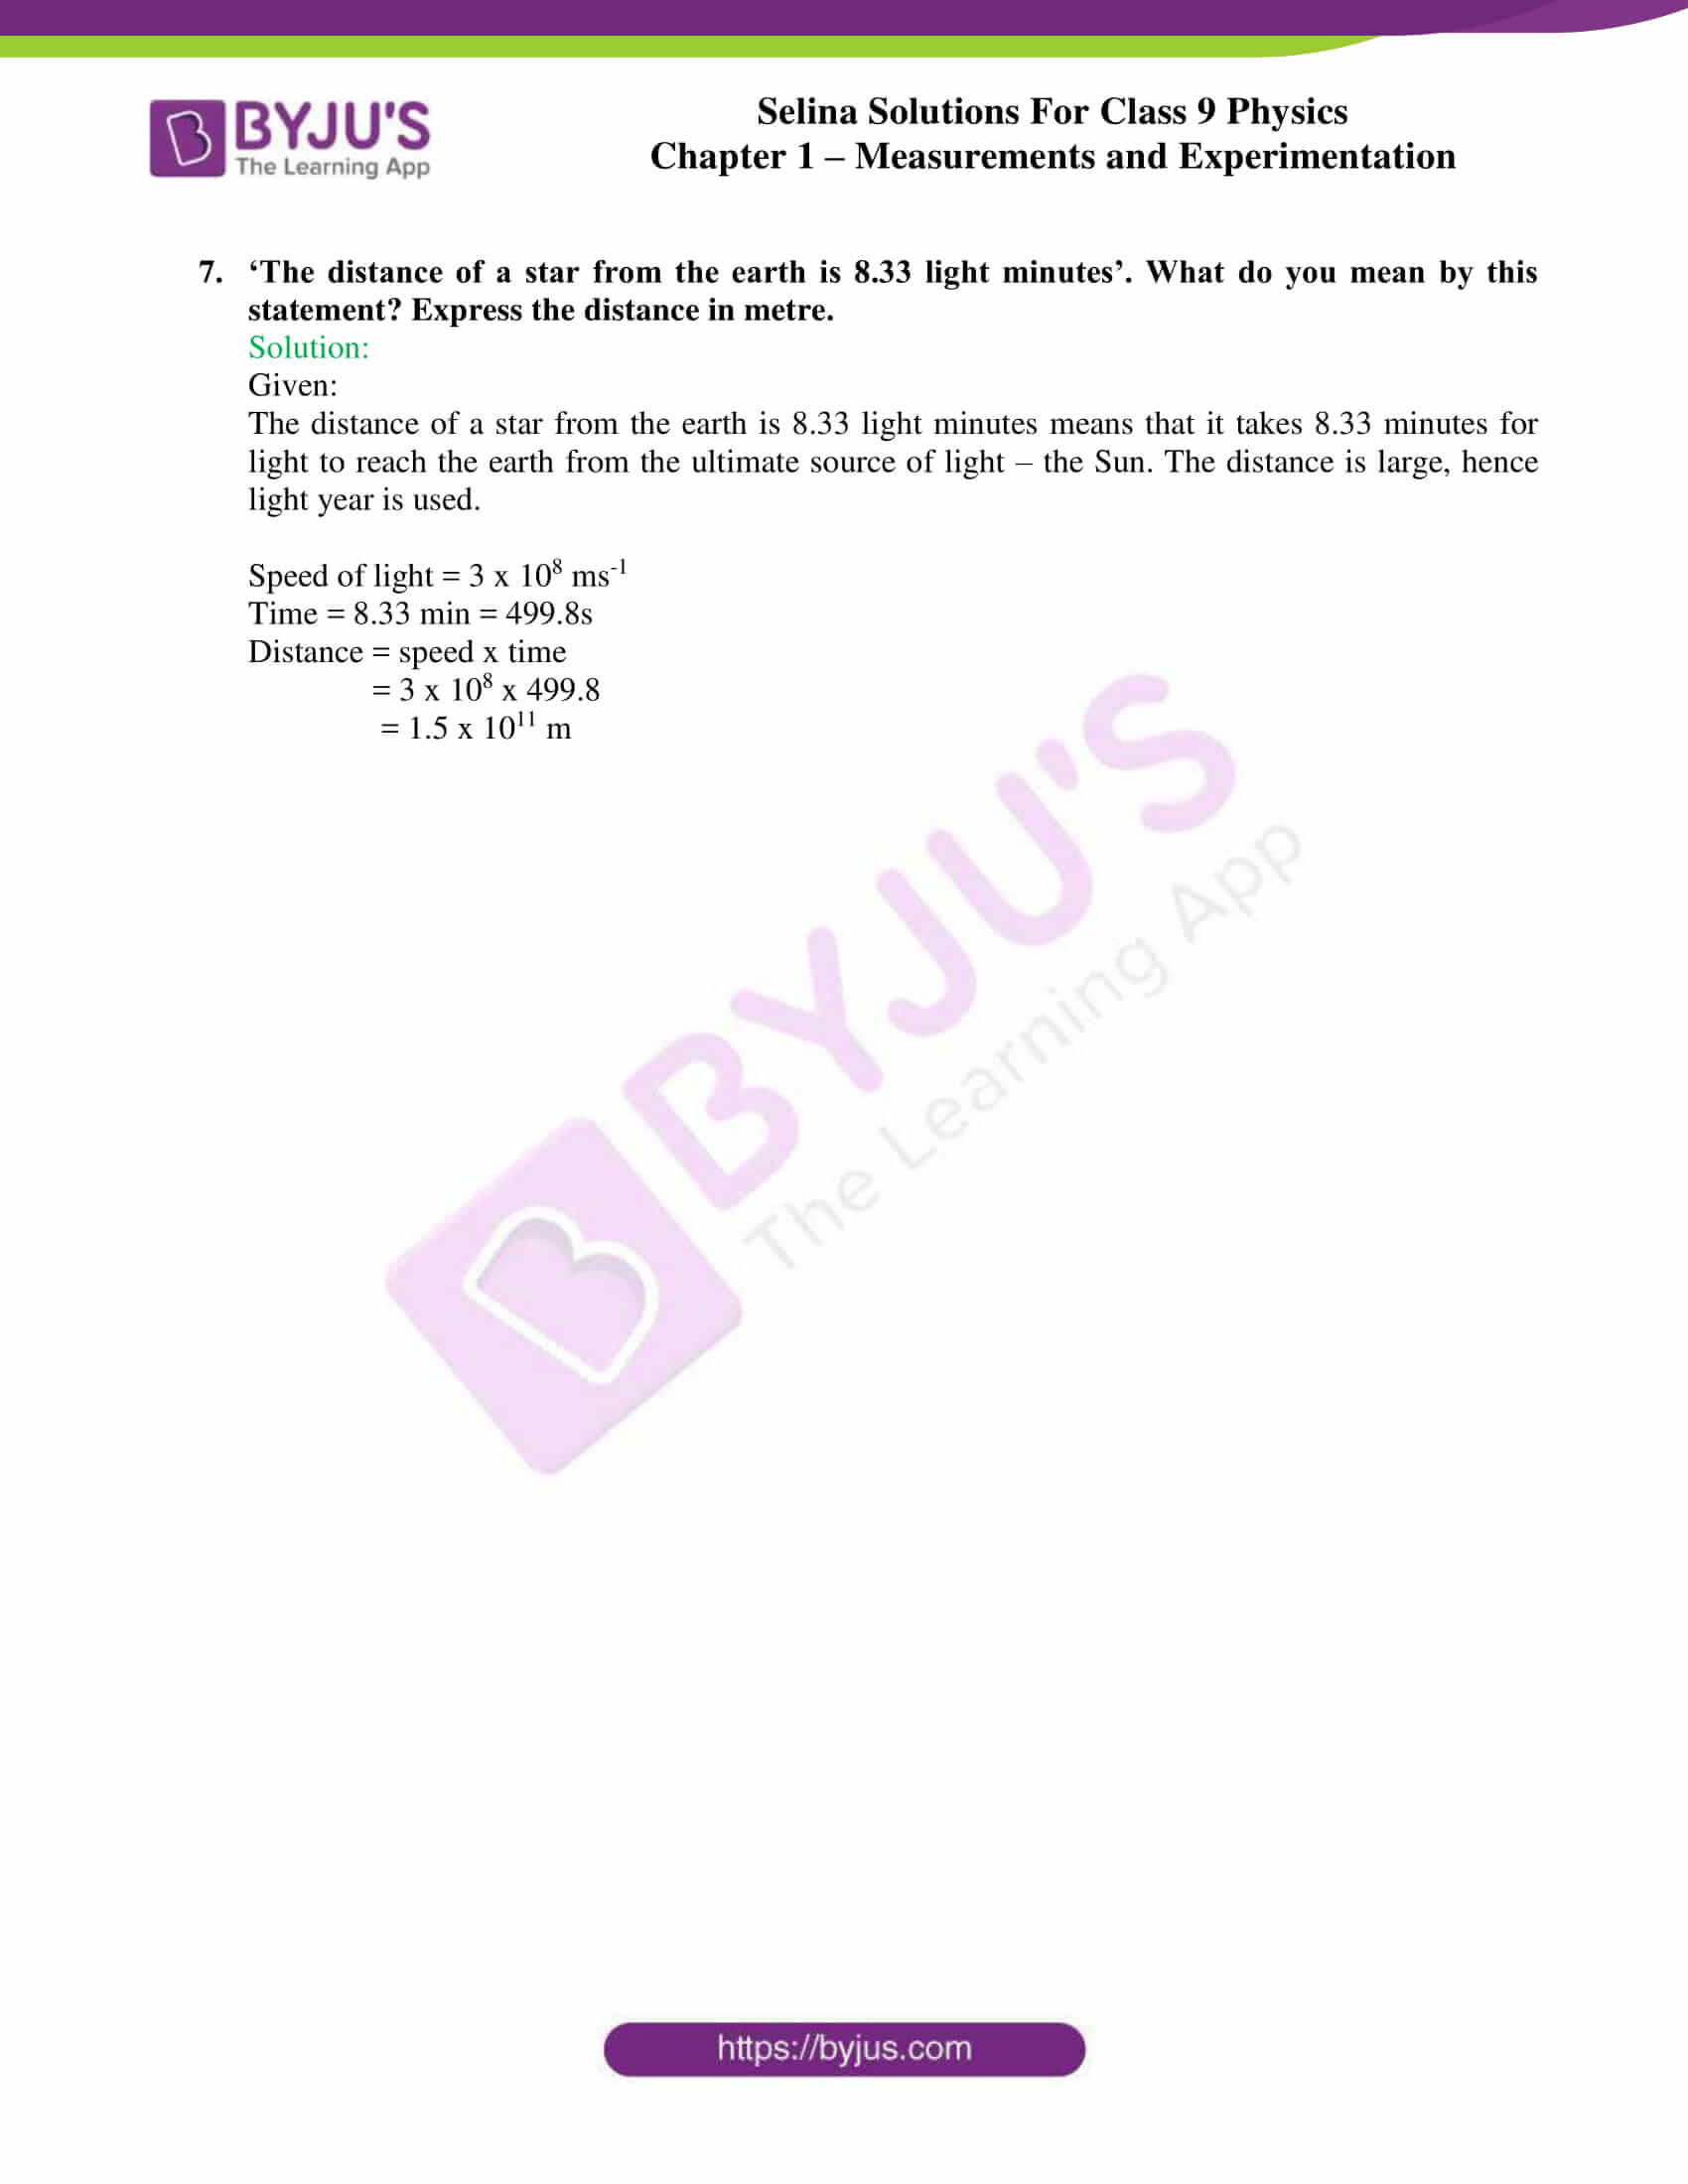 selina solutions class 9 physics chapter 1 Measurements and Experimentation part 09